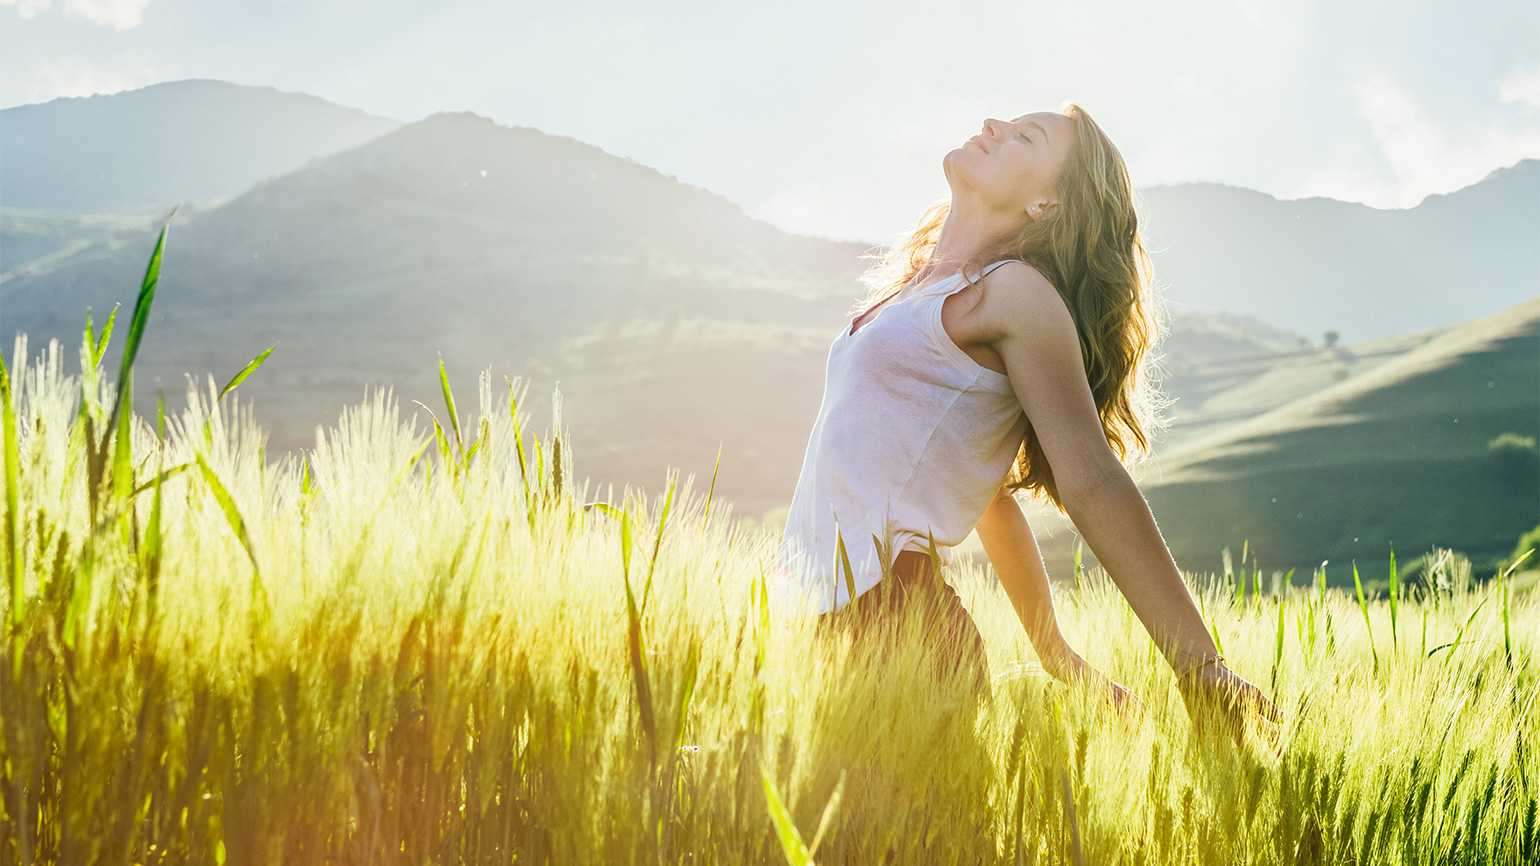 A woman soaks in the warm sun of a mountain meadow